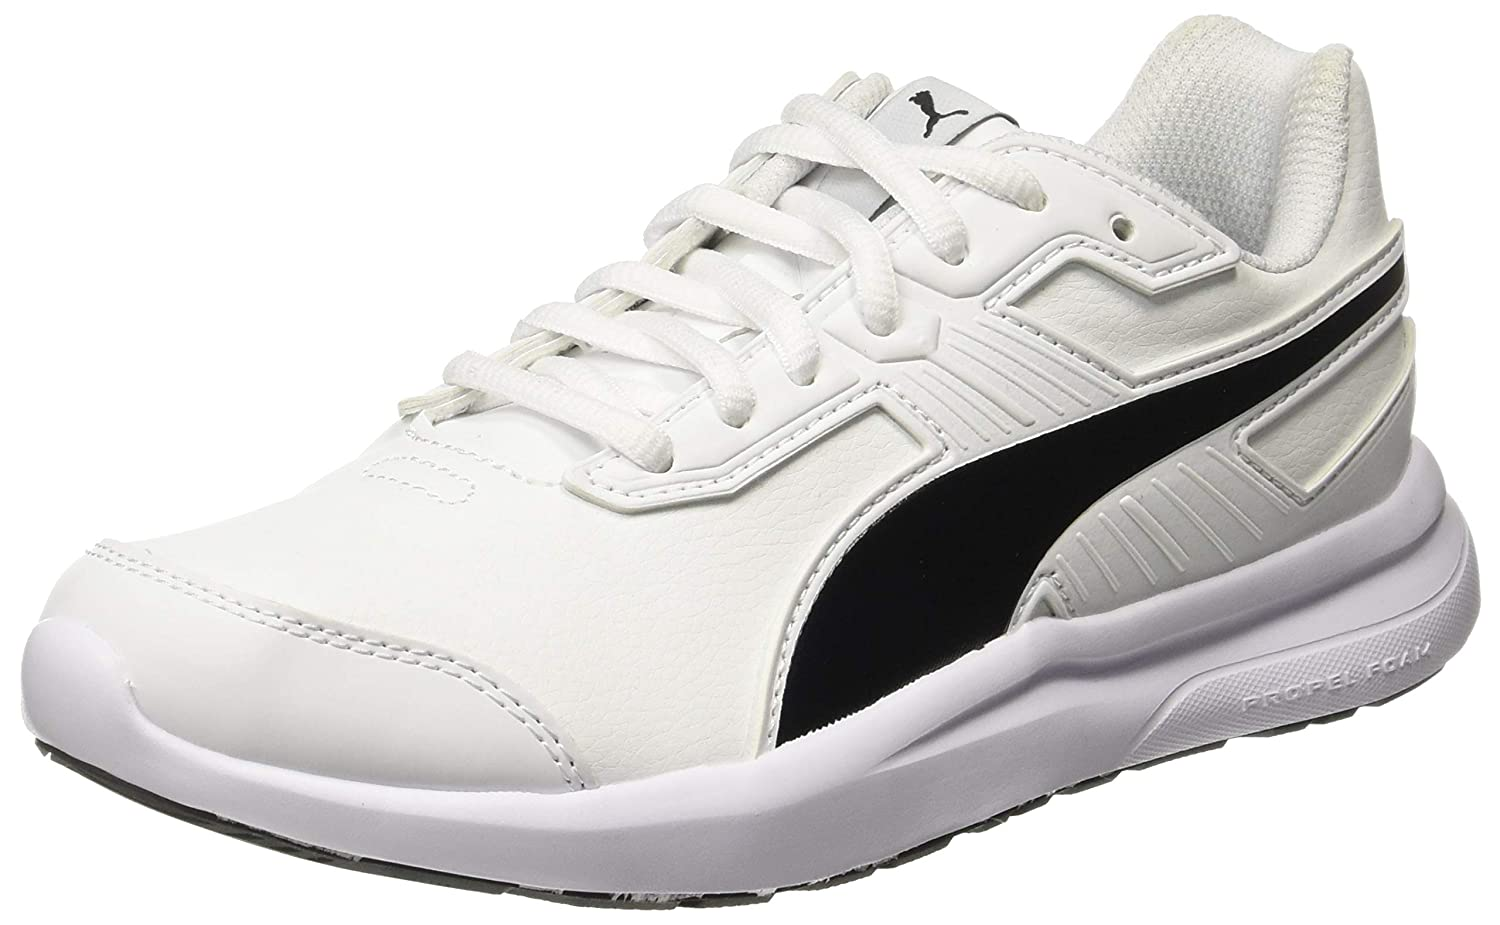 TALLA 42 EU. Puma Escaper SL, Zapatillas de Cross Unisex Adulto